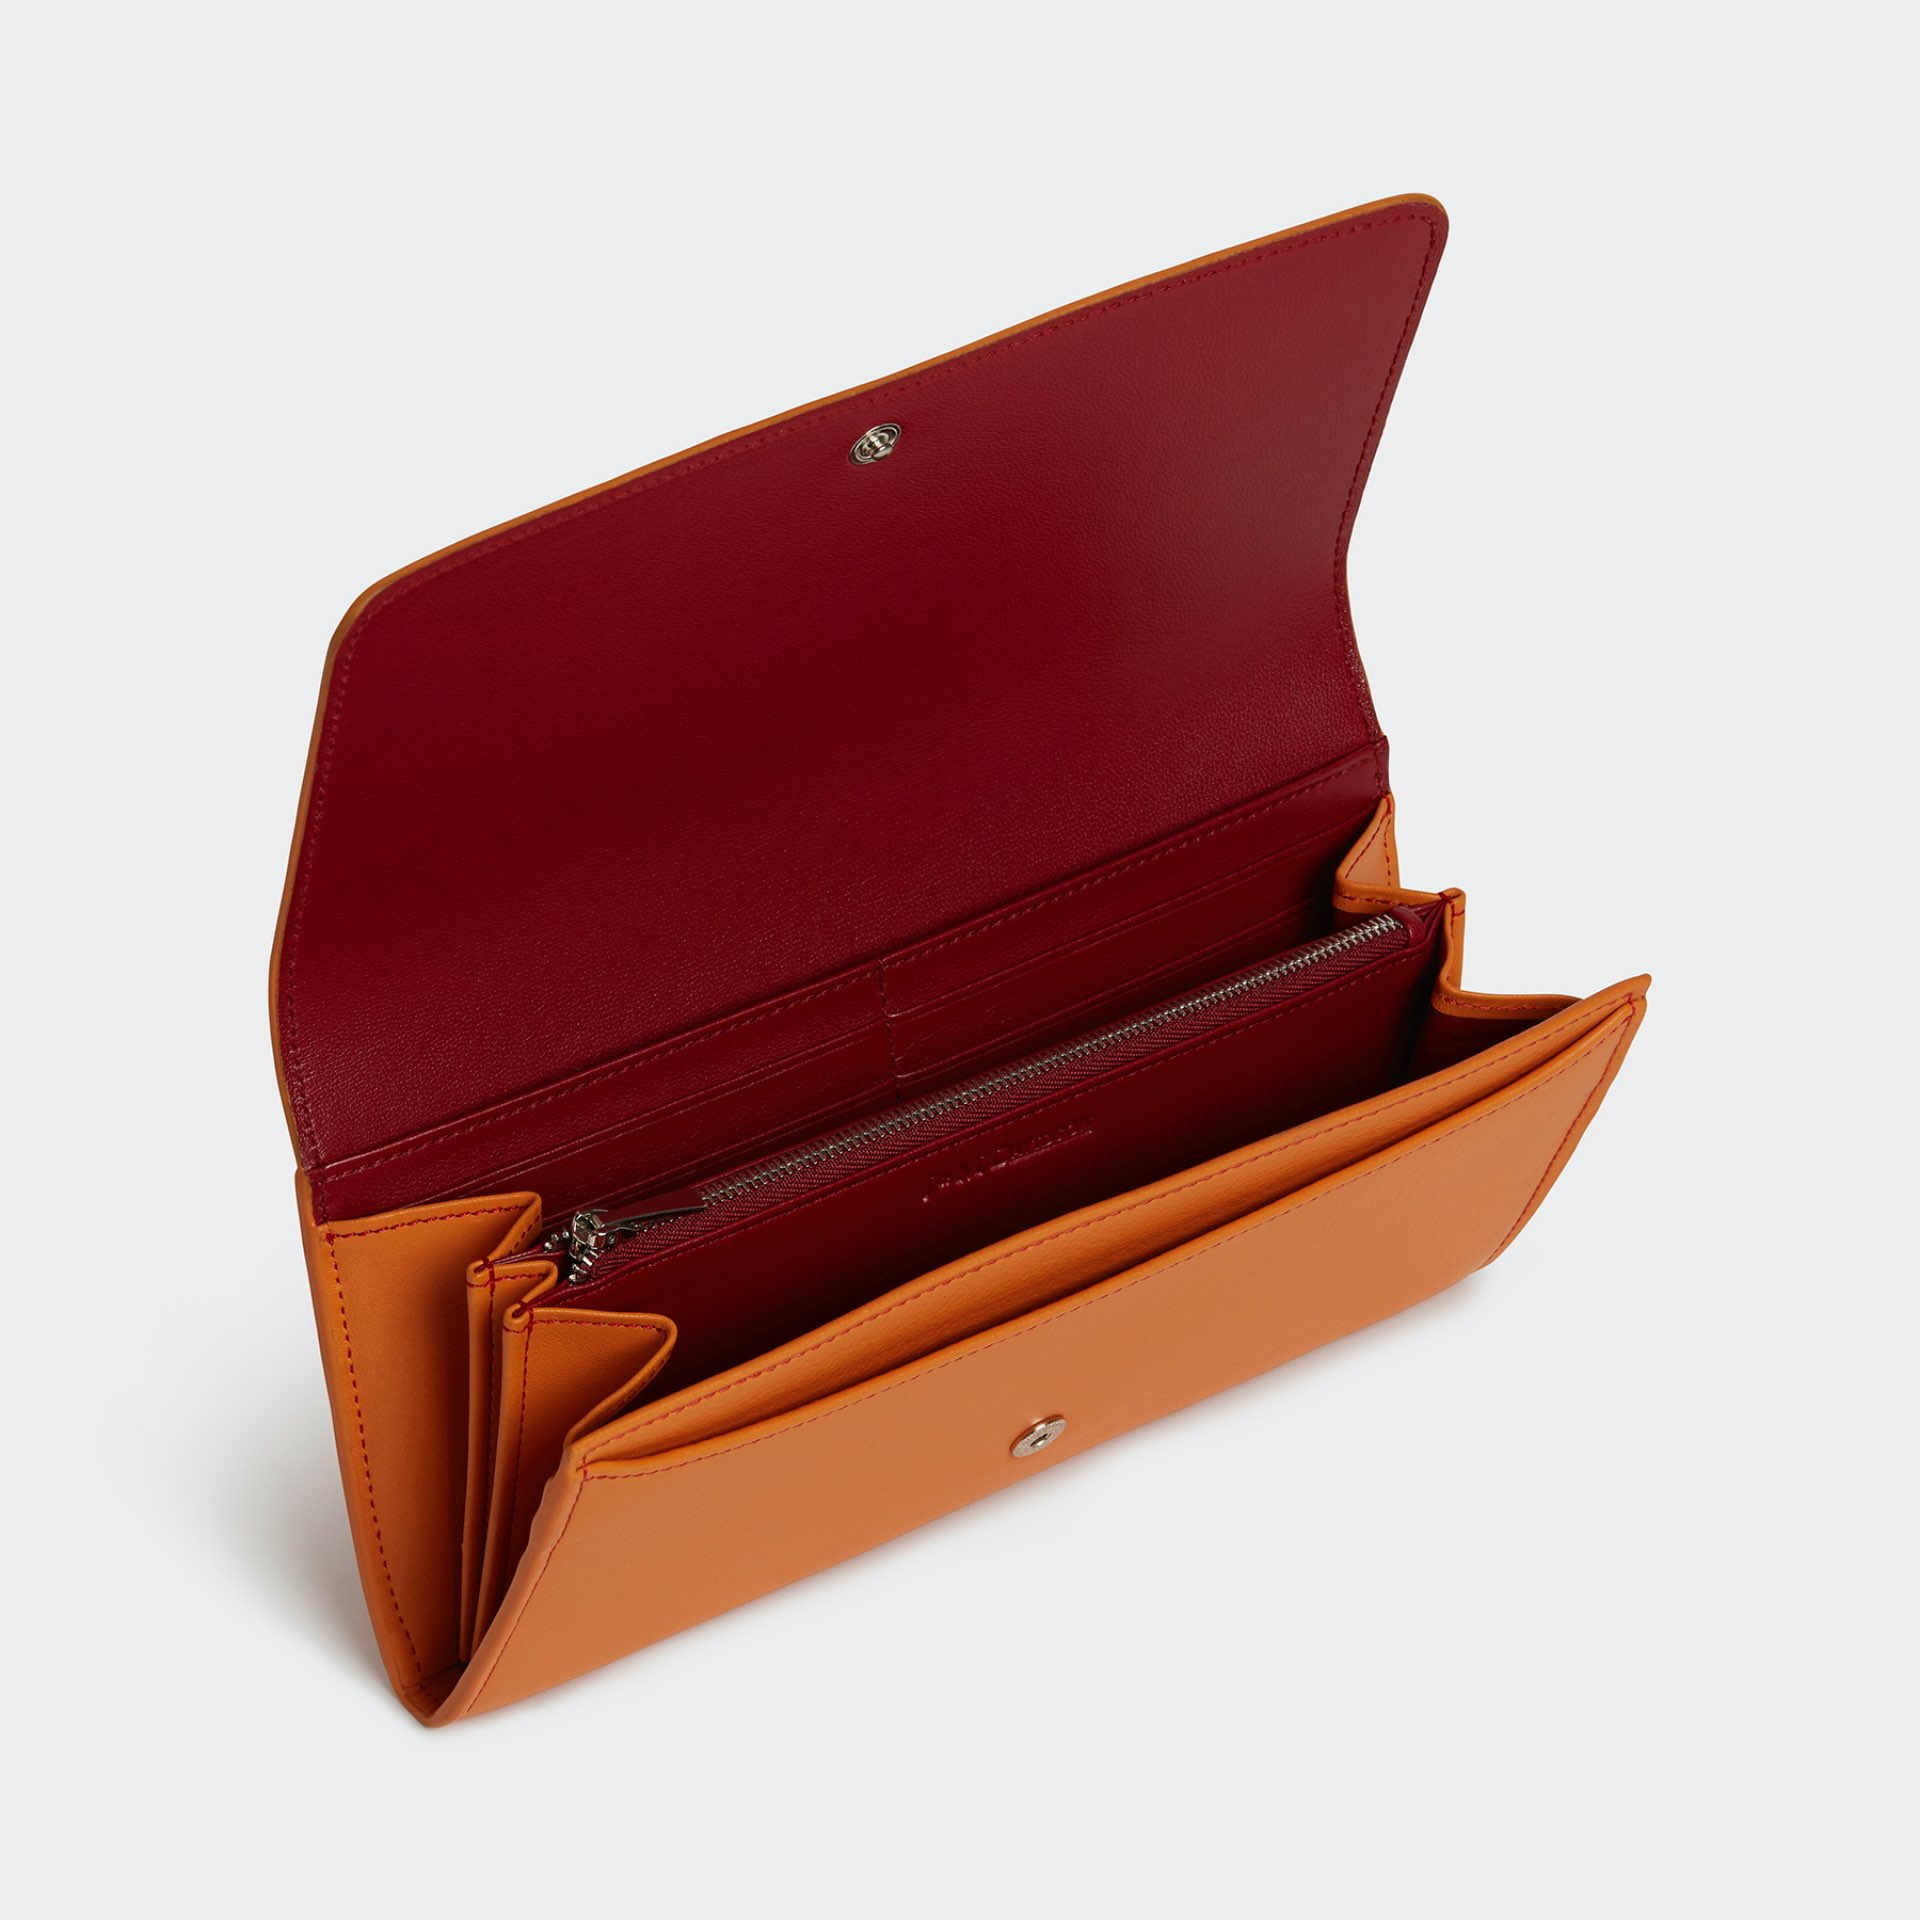 J&M purse in orange with deep red inside